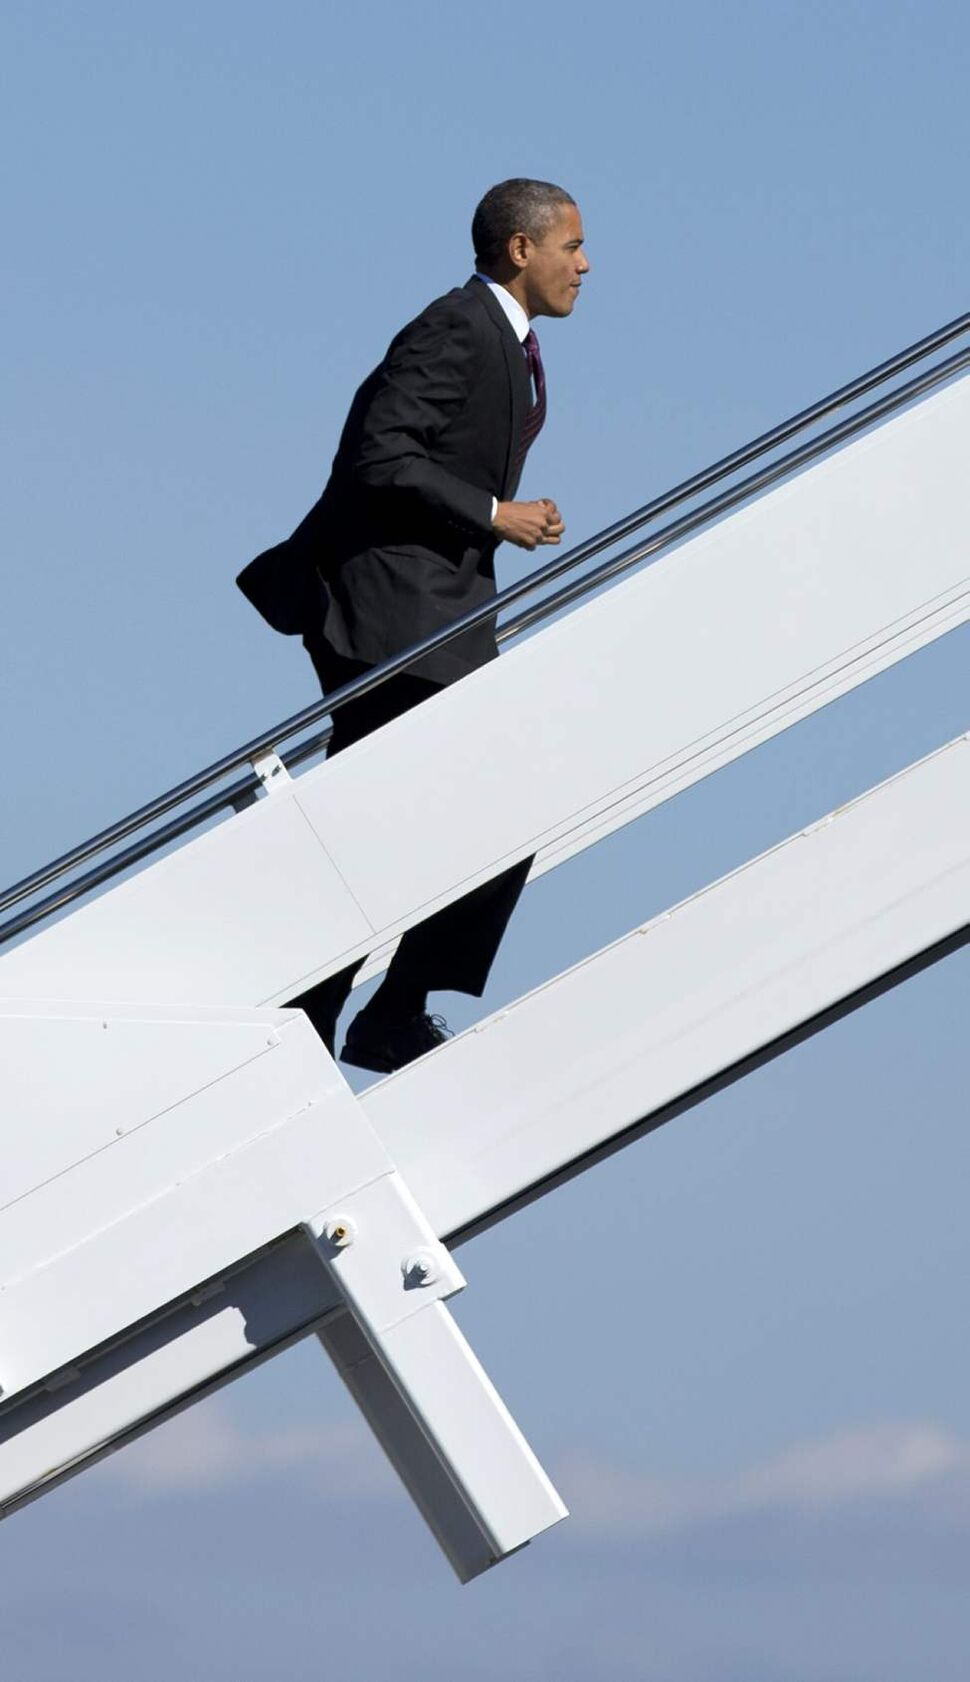 President Barack Obama boards Air Force One at Newport News Williamsburg International Airport, Tuesday, Oct. 16, 2012, in Williamsburg, en route to New York. (AP Photo/Carolyn Kaster)